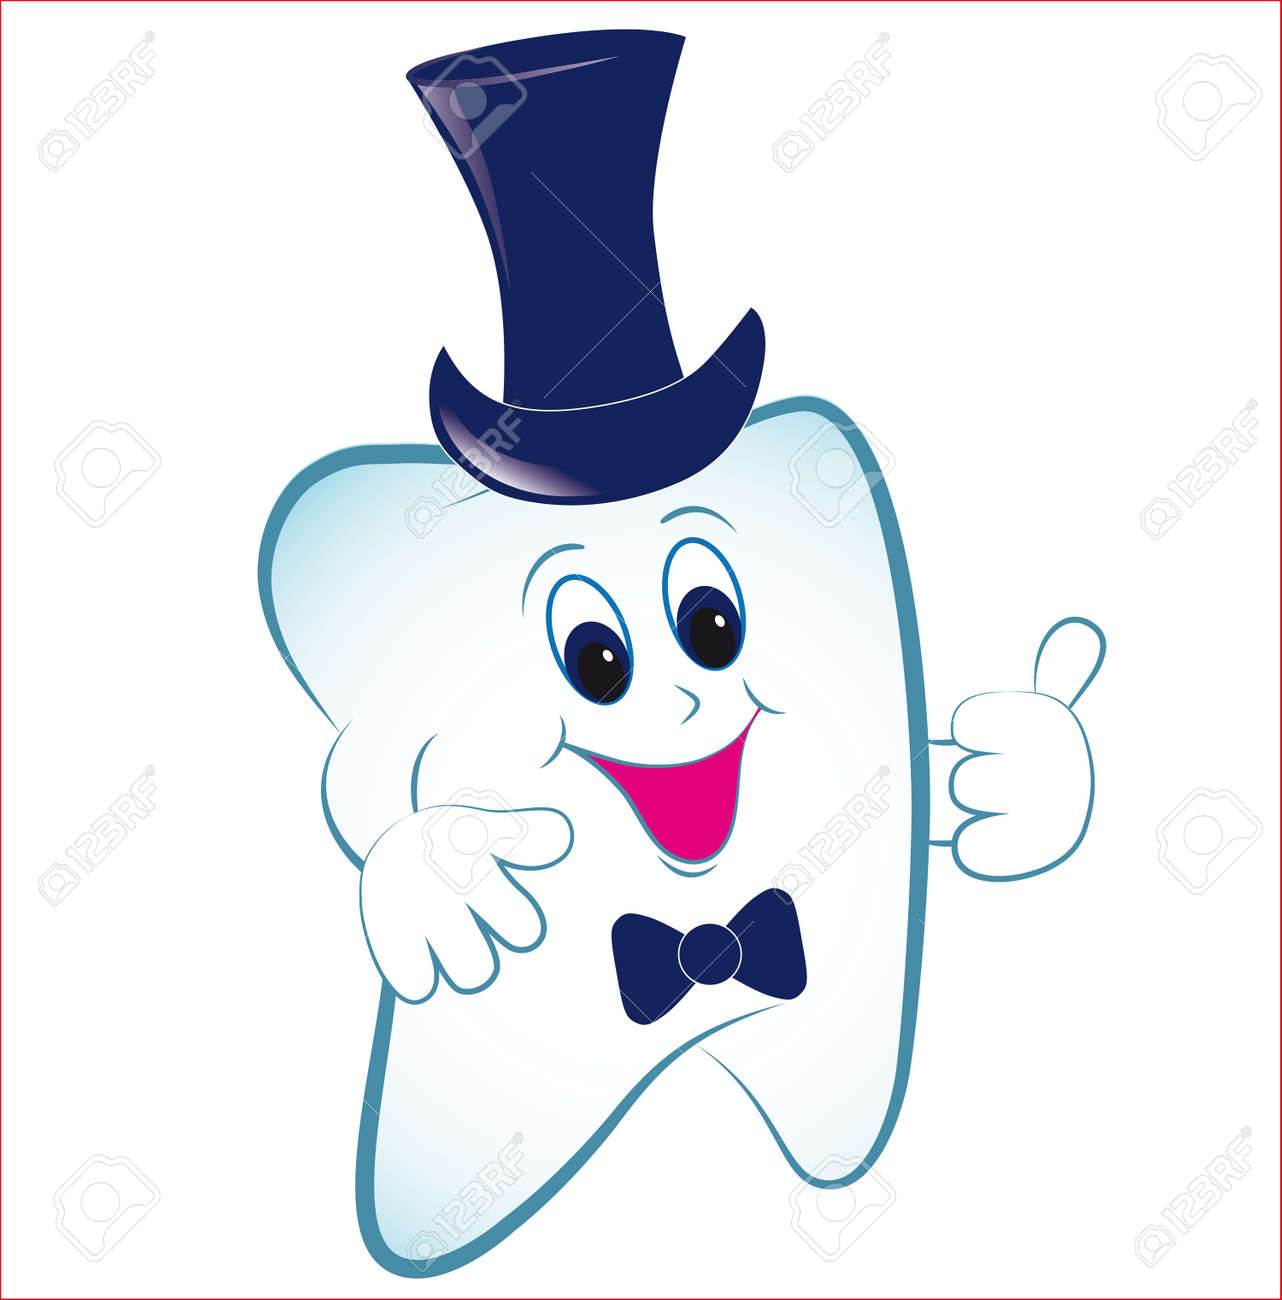 Happy cartoon tooth vector with thumb and hat. Invite illustration. Stock Vector - 10014574